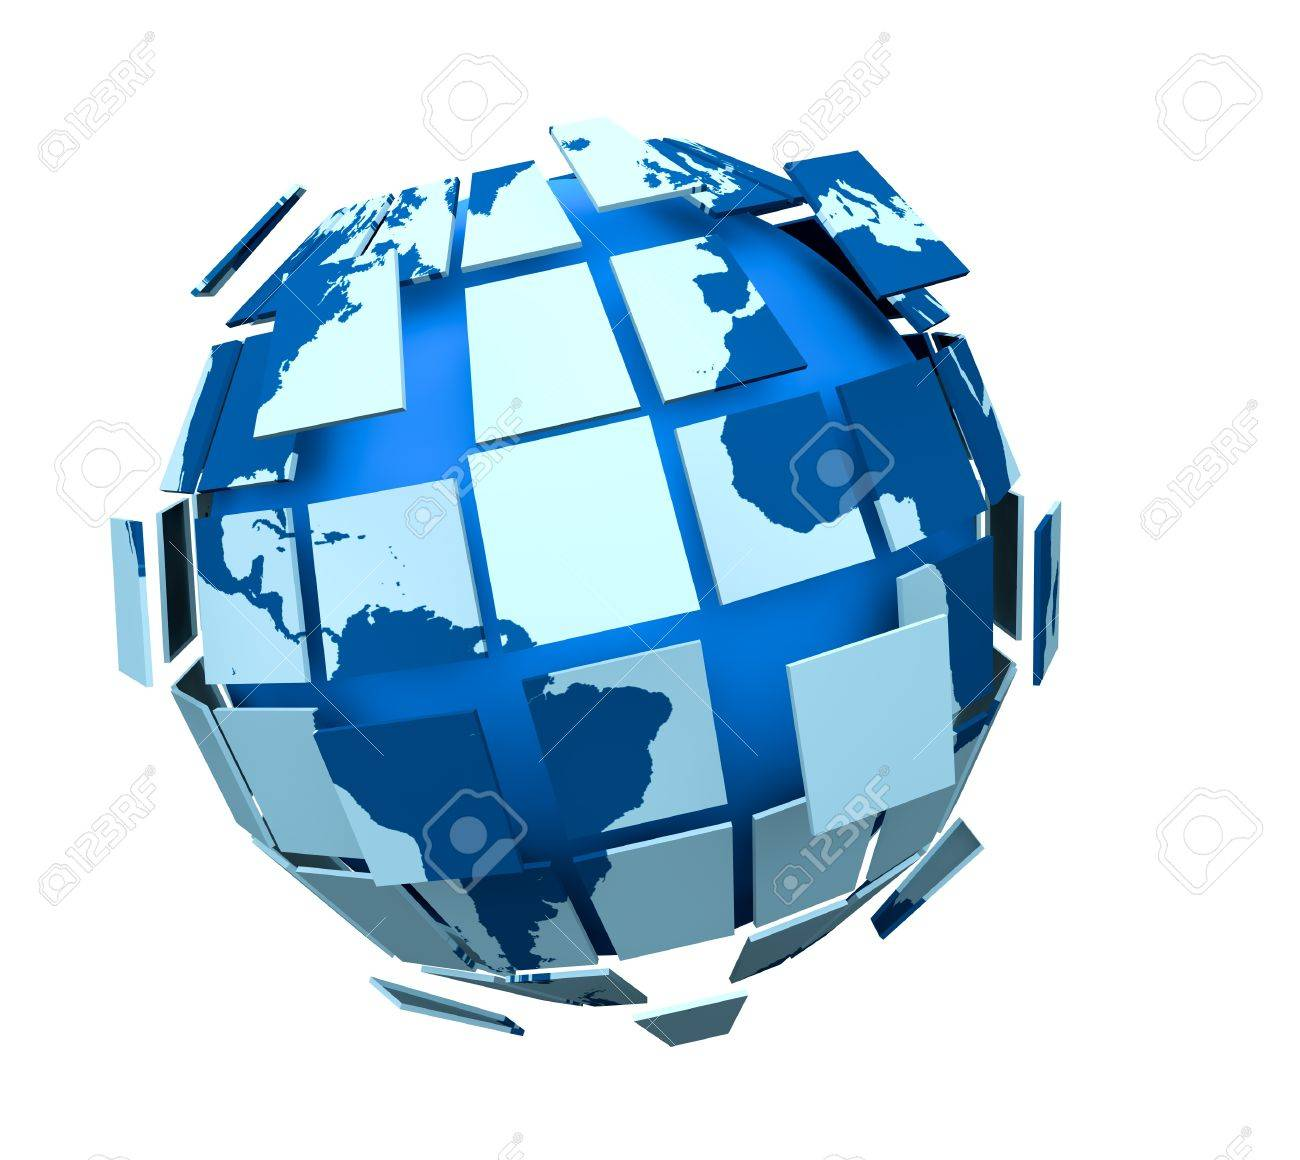 one 3d globe made with many pieces that are joining or dividing each other, concept of union or division (3d render) Stock Photo - 11240585